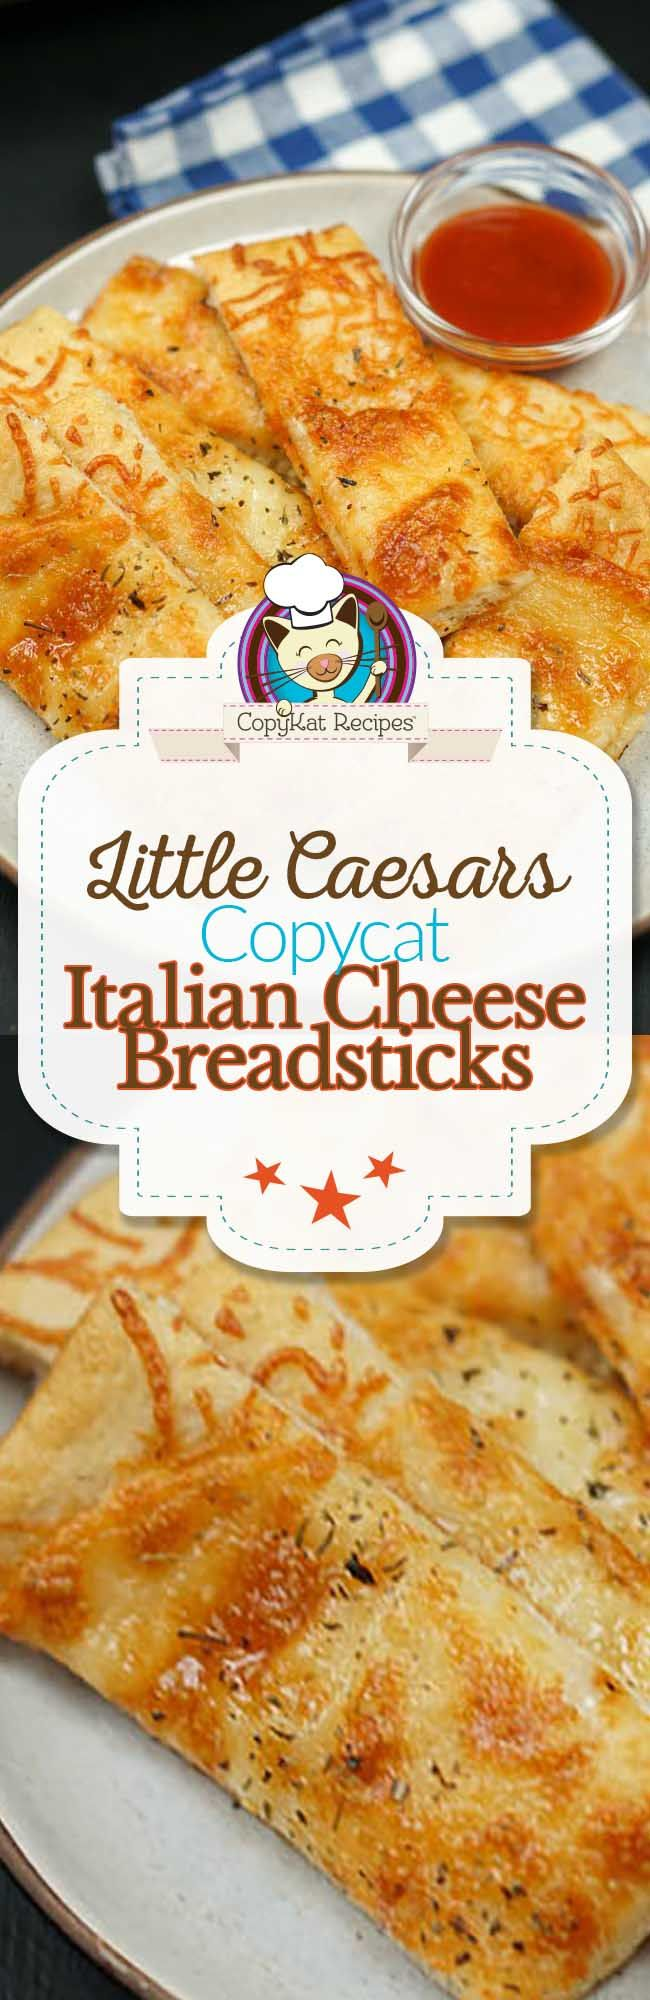 Little Caesars Italian Cheese Breadsticks are one of the most popular menu items at Little Caesars. Did you know you can recreate this recipe at home? Are you looking for...